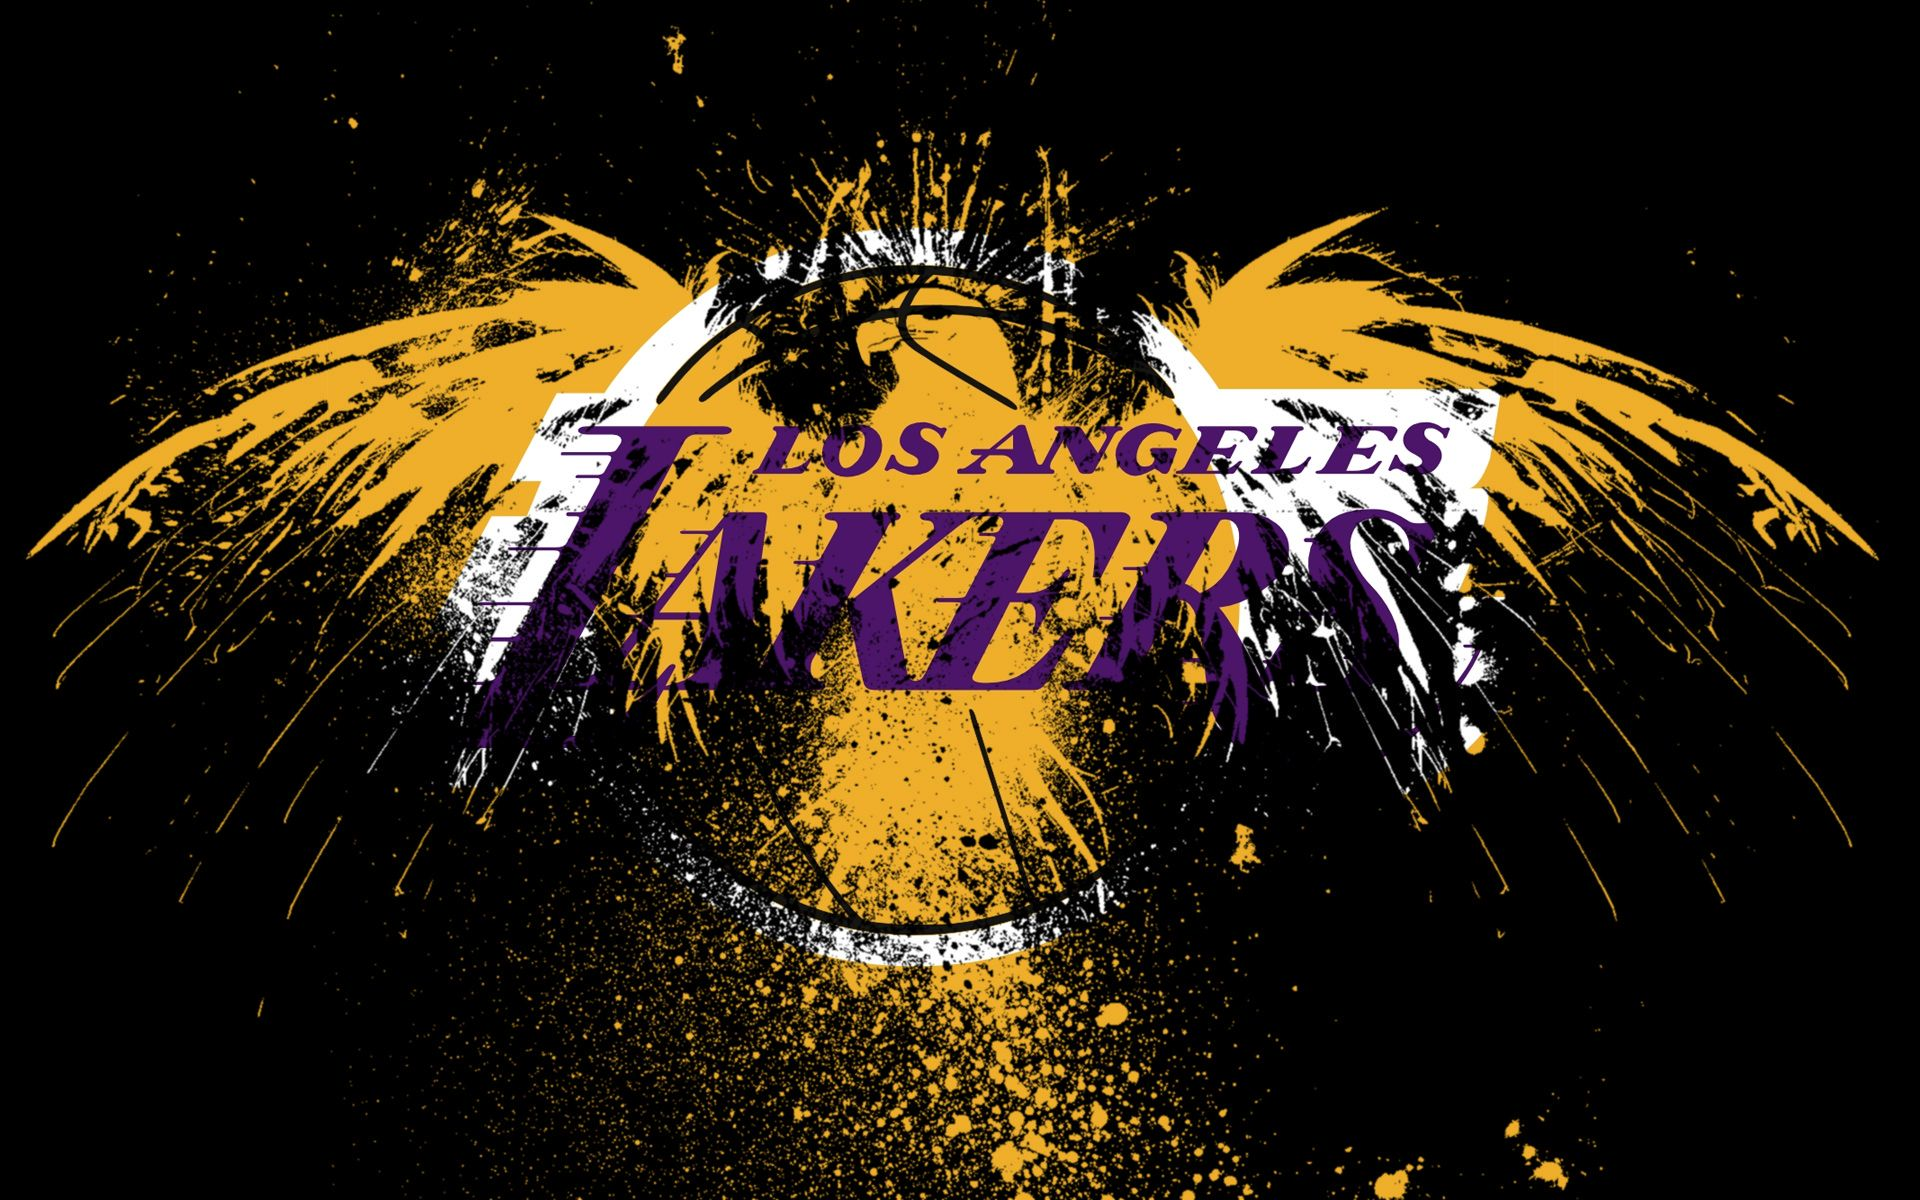 Los Angeles Lakers Wallpaper Lakers wallpaper, Lakers